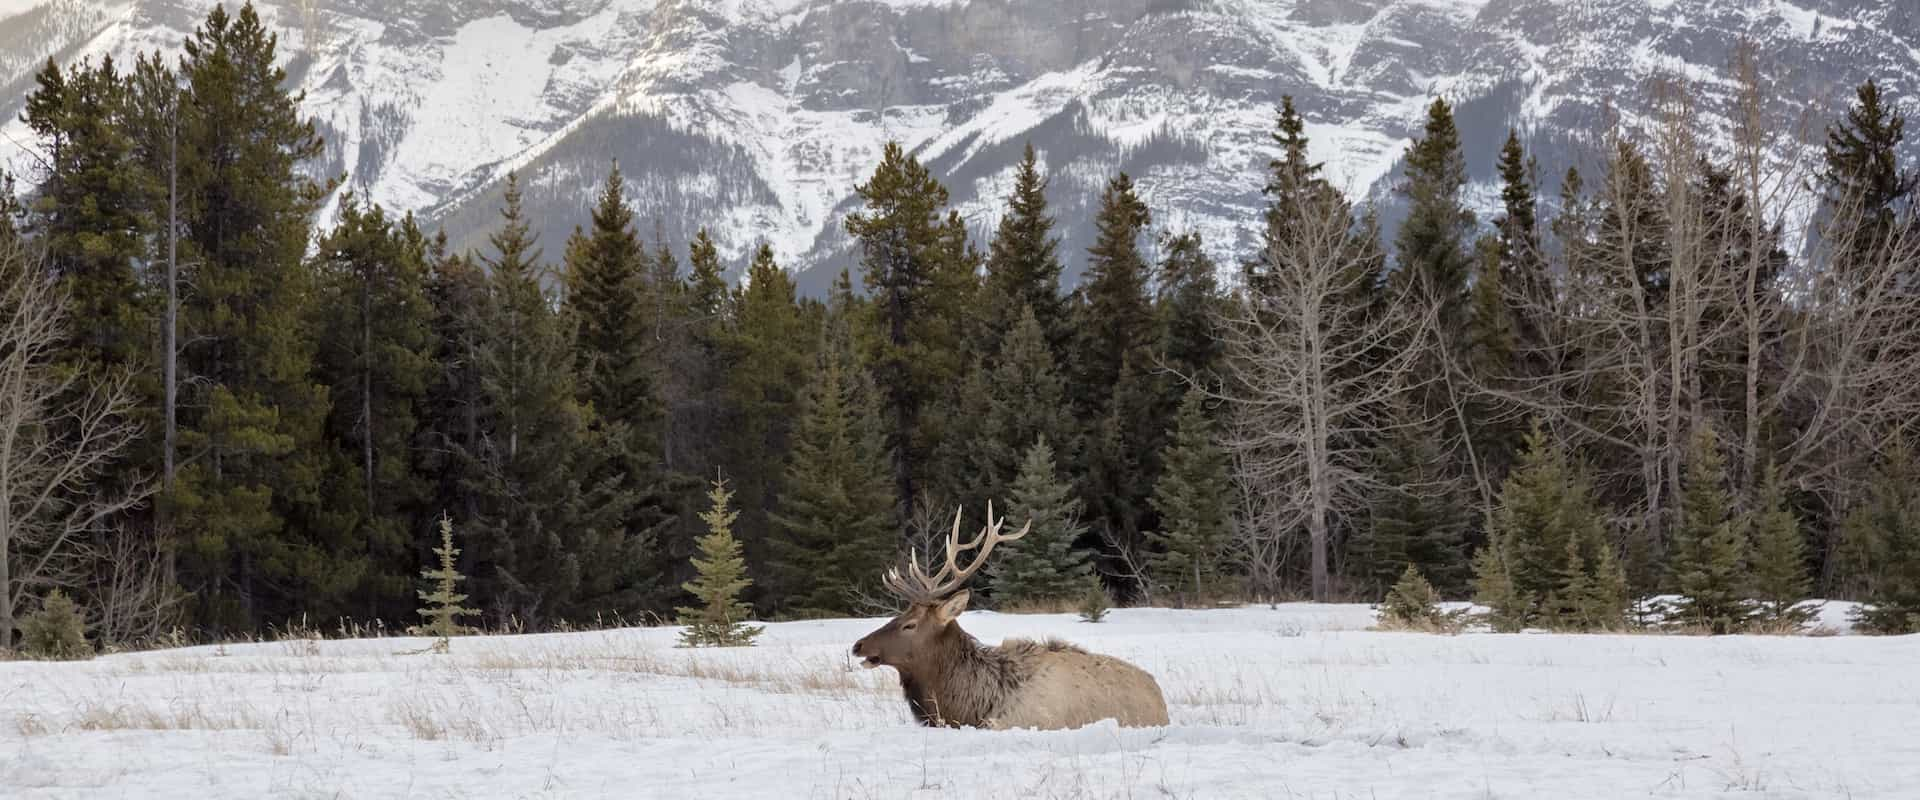 See elk on wildlife tour with Discover Banff Tours